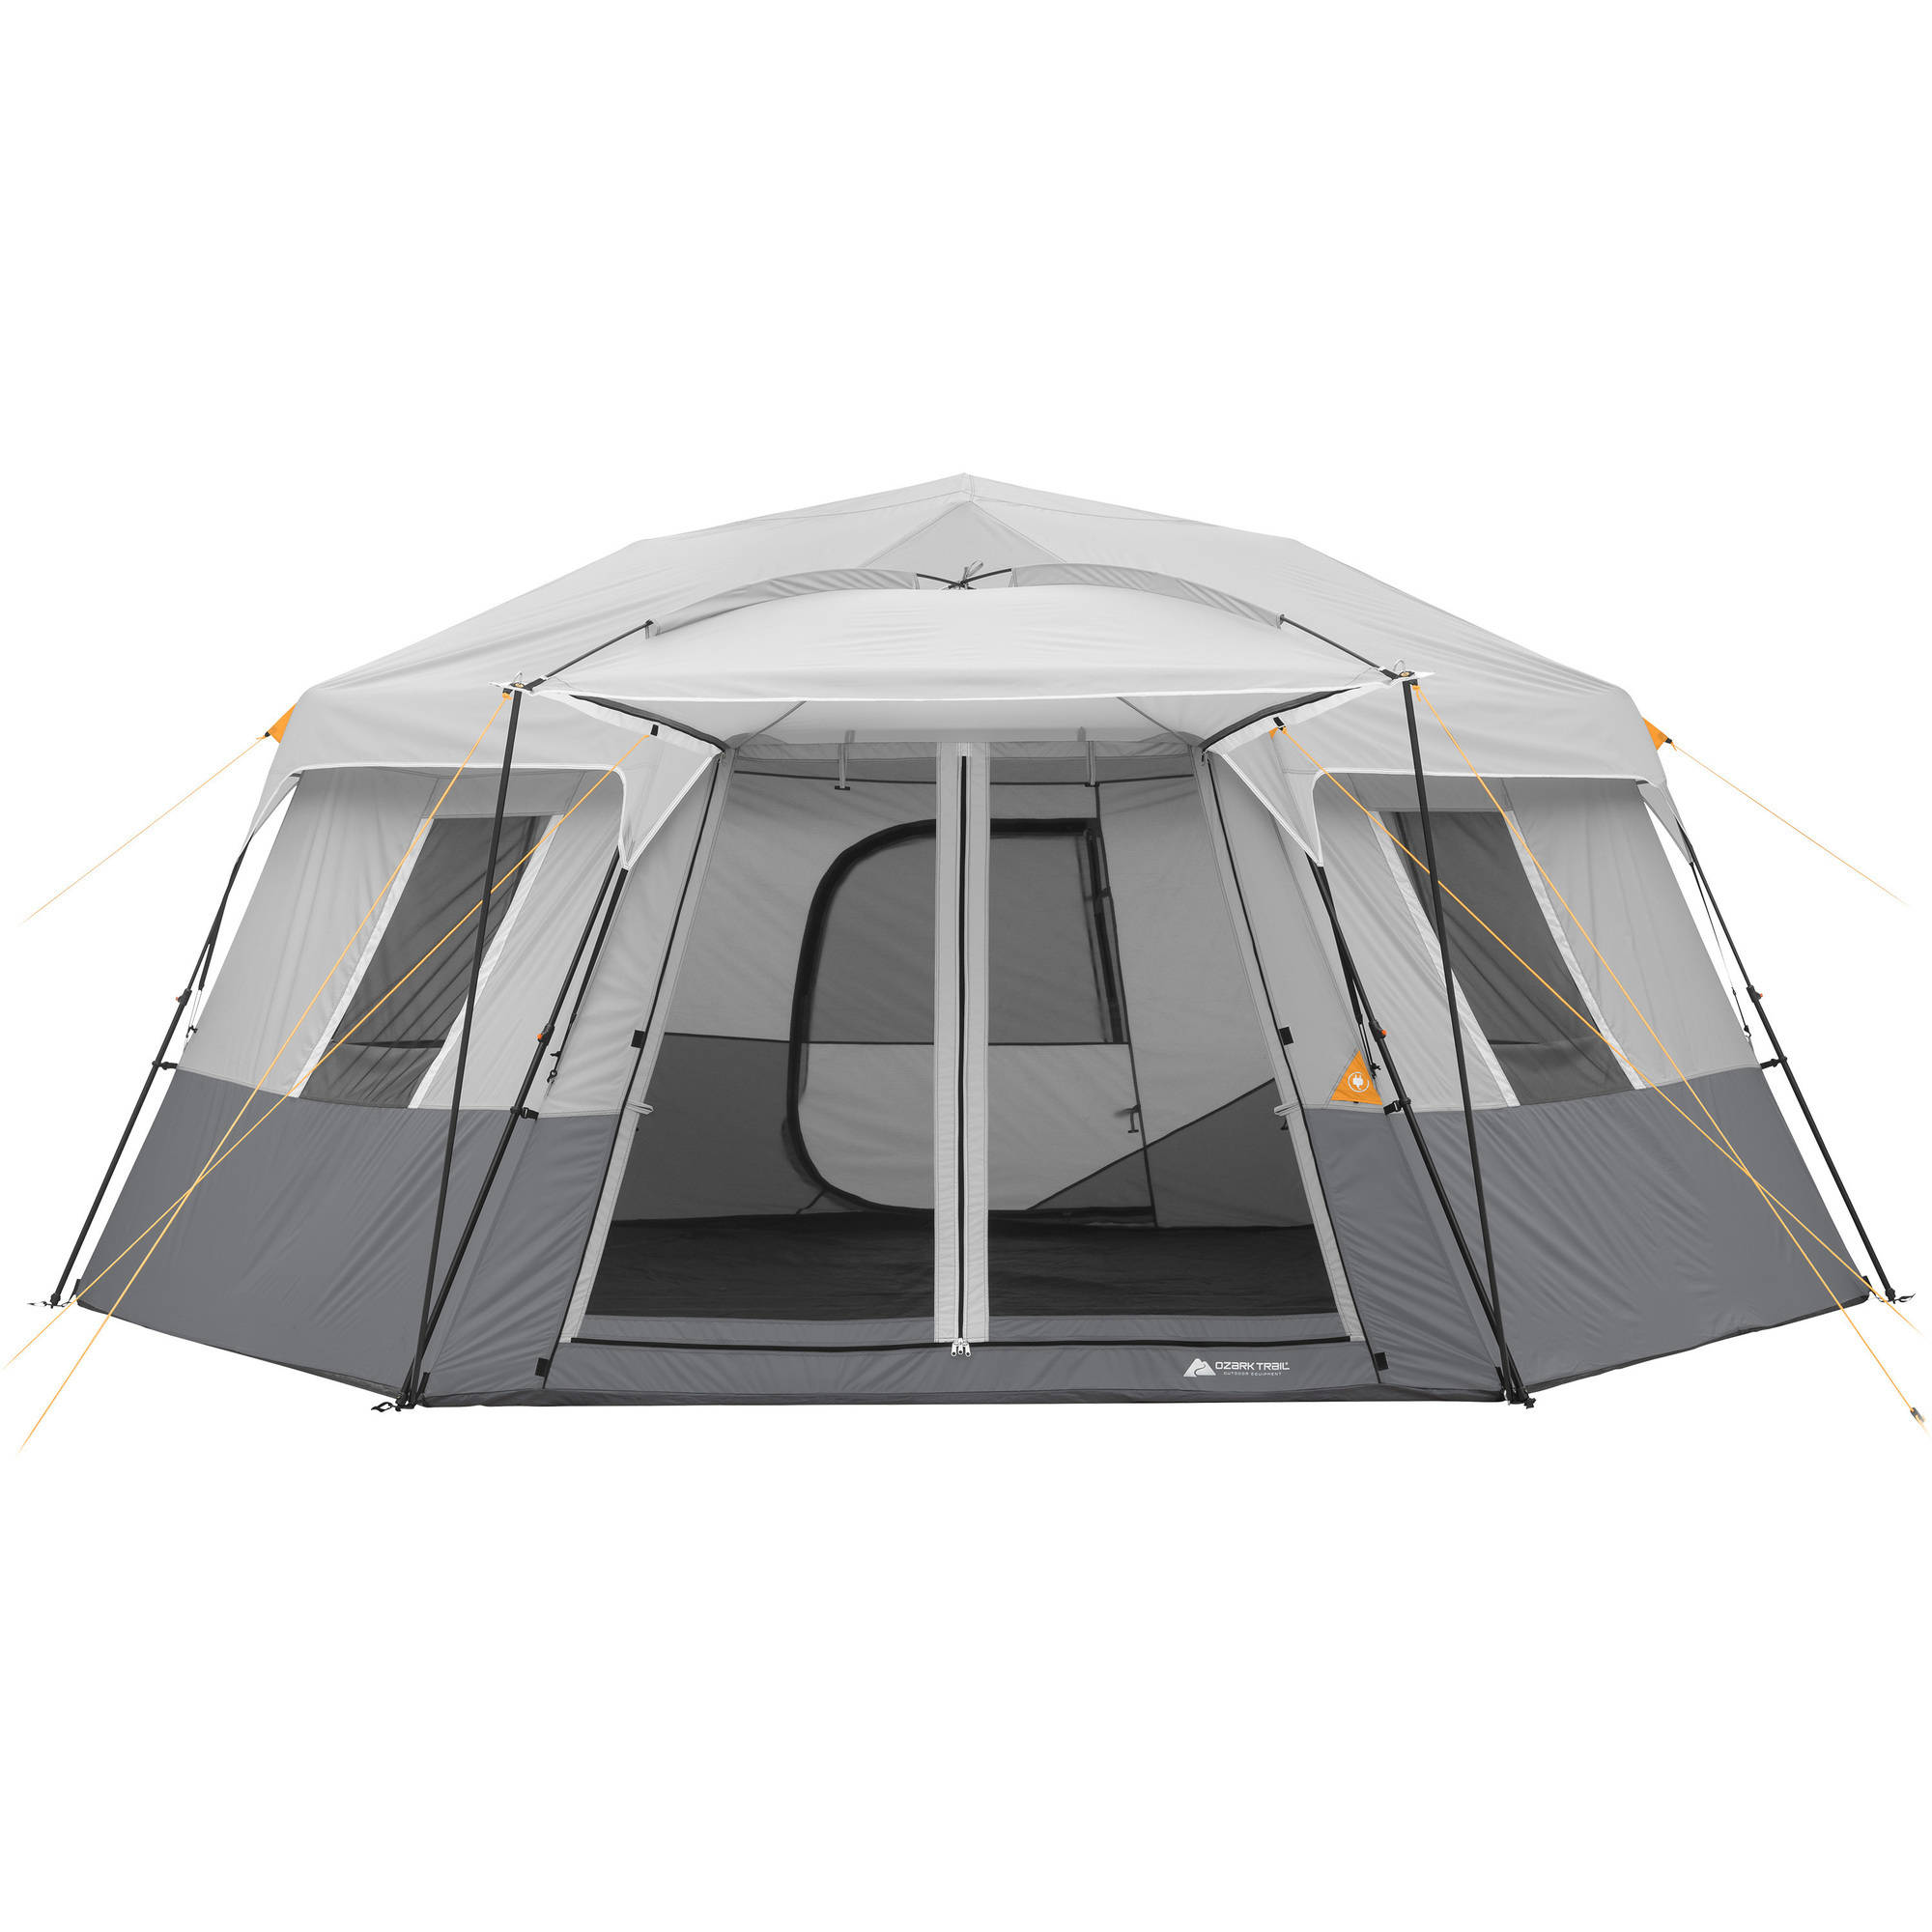 Ozark Trail 17u0027 x 15u0027 Person Instant Hexagon Cabin Tent Sleeps 11  sc 1 st  Walmart.com : 15 person tent - memphite.com